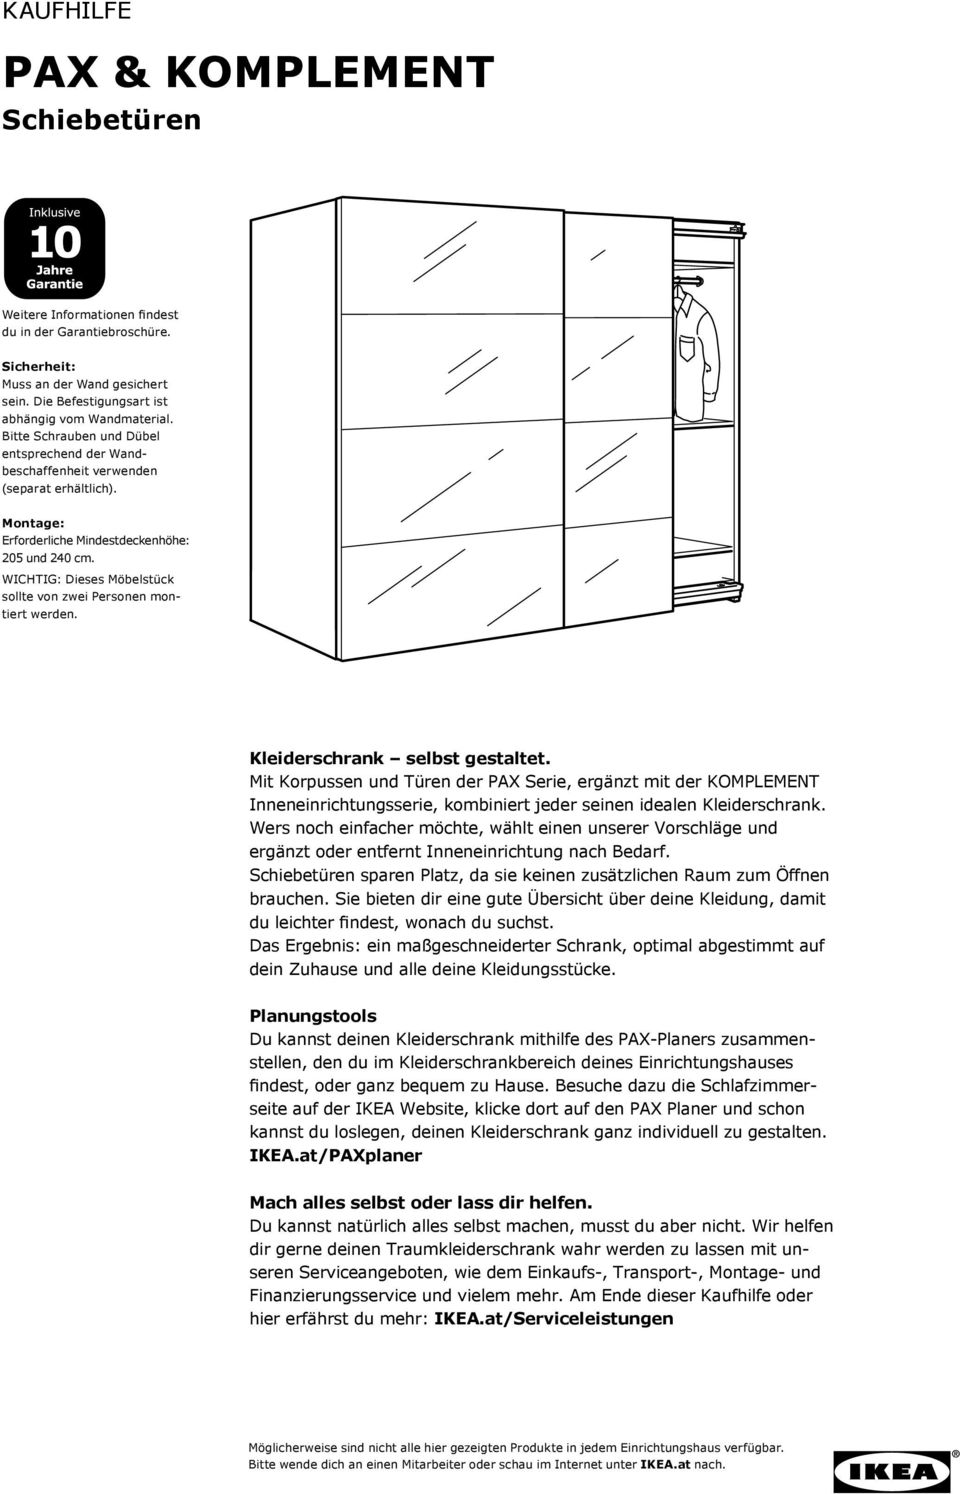 pax komplement schiebet ren kaufhilfe pdf. Black Bedroom Furniture Sets. Home Design Ideas